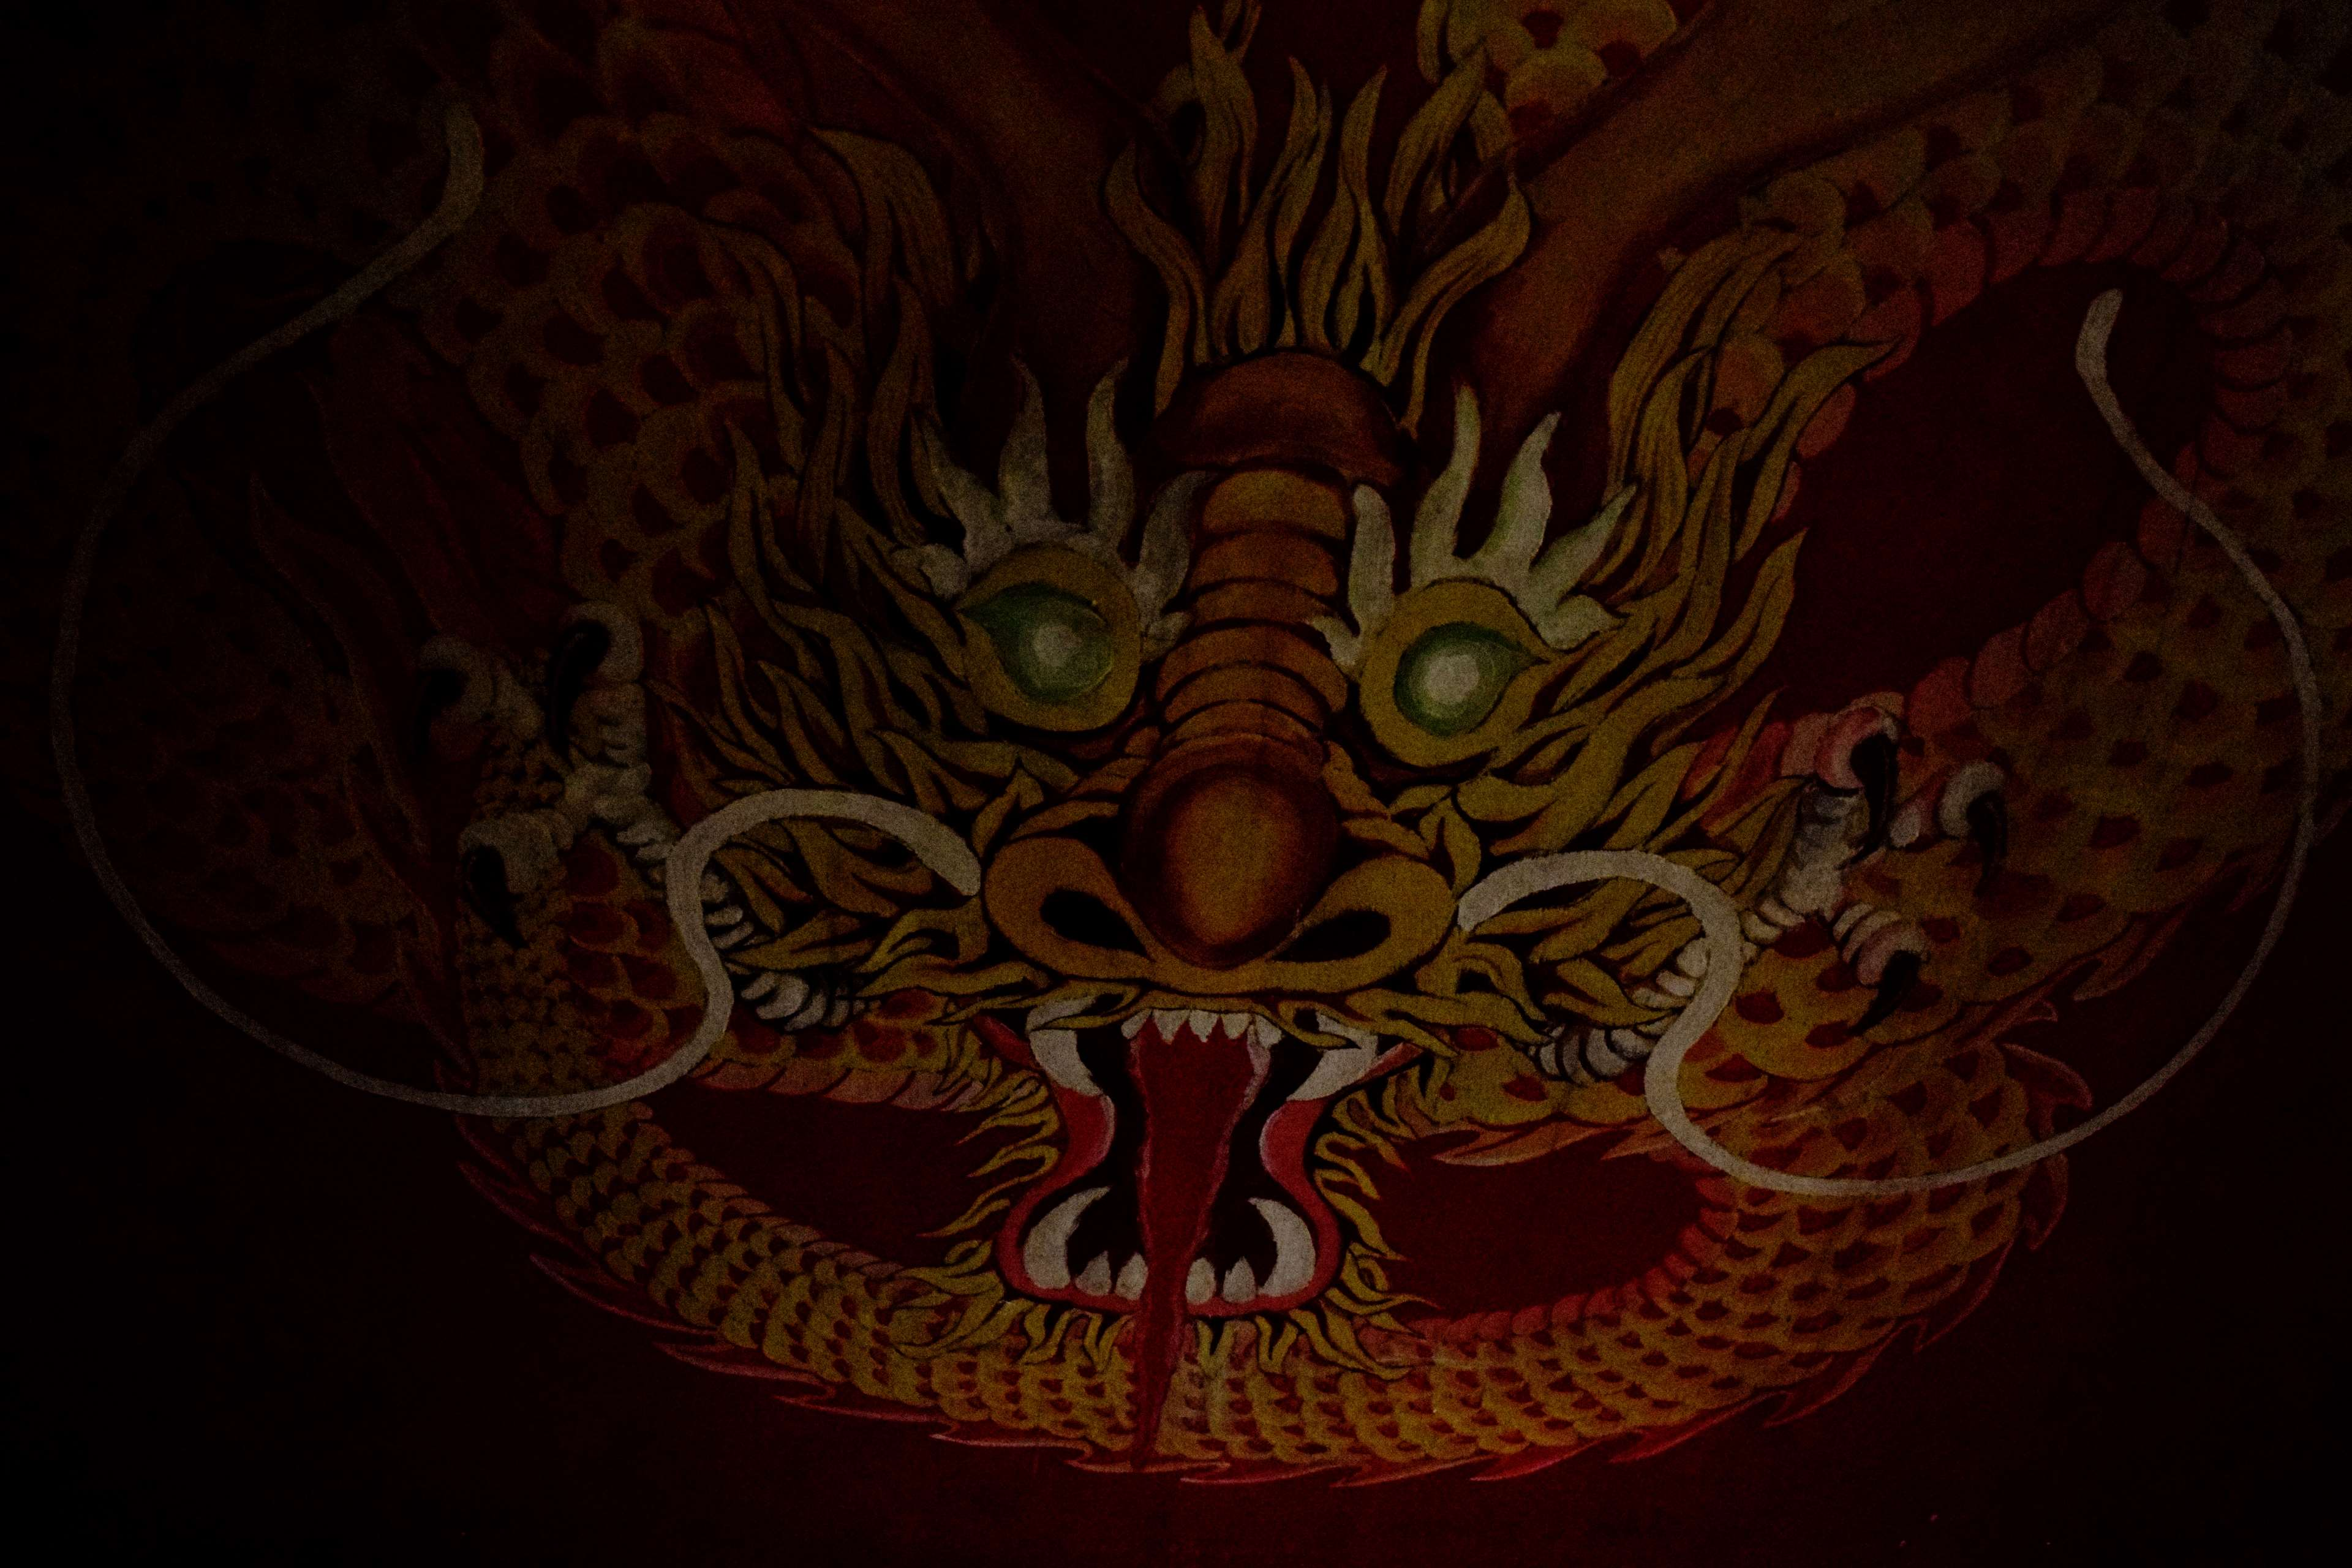 3840x2560 3035021 art, background, chinese, dragon 4k wallpaper and ...